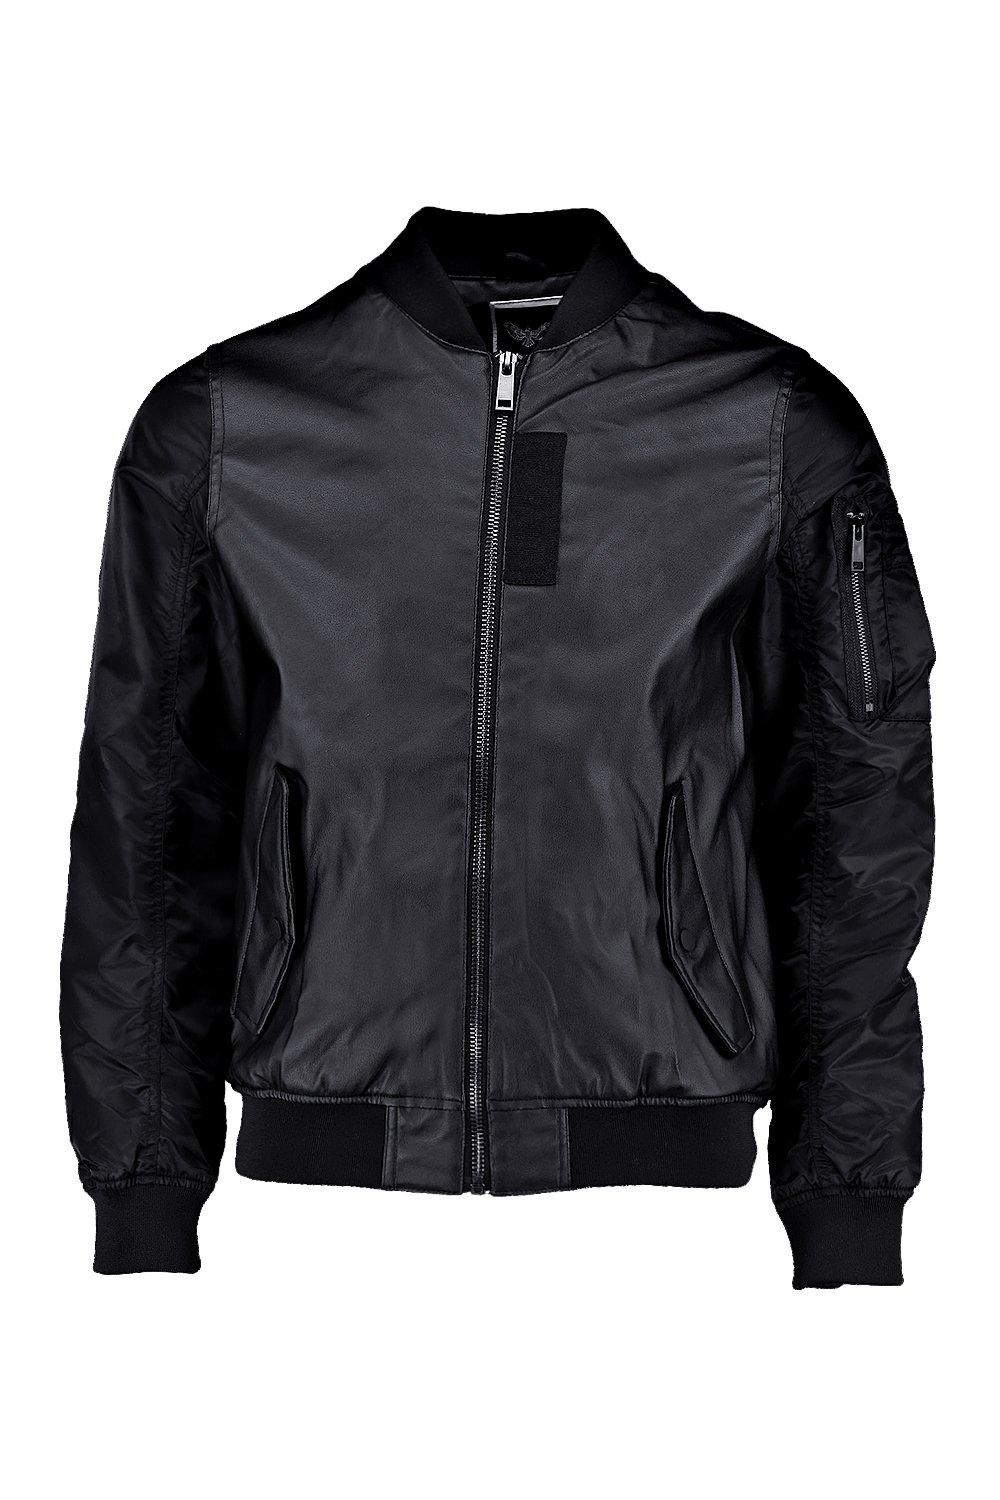 Boohoo Leather Look Ma1 Bomber Jacket in Black for Men